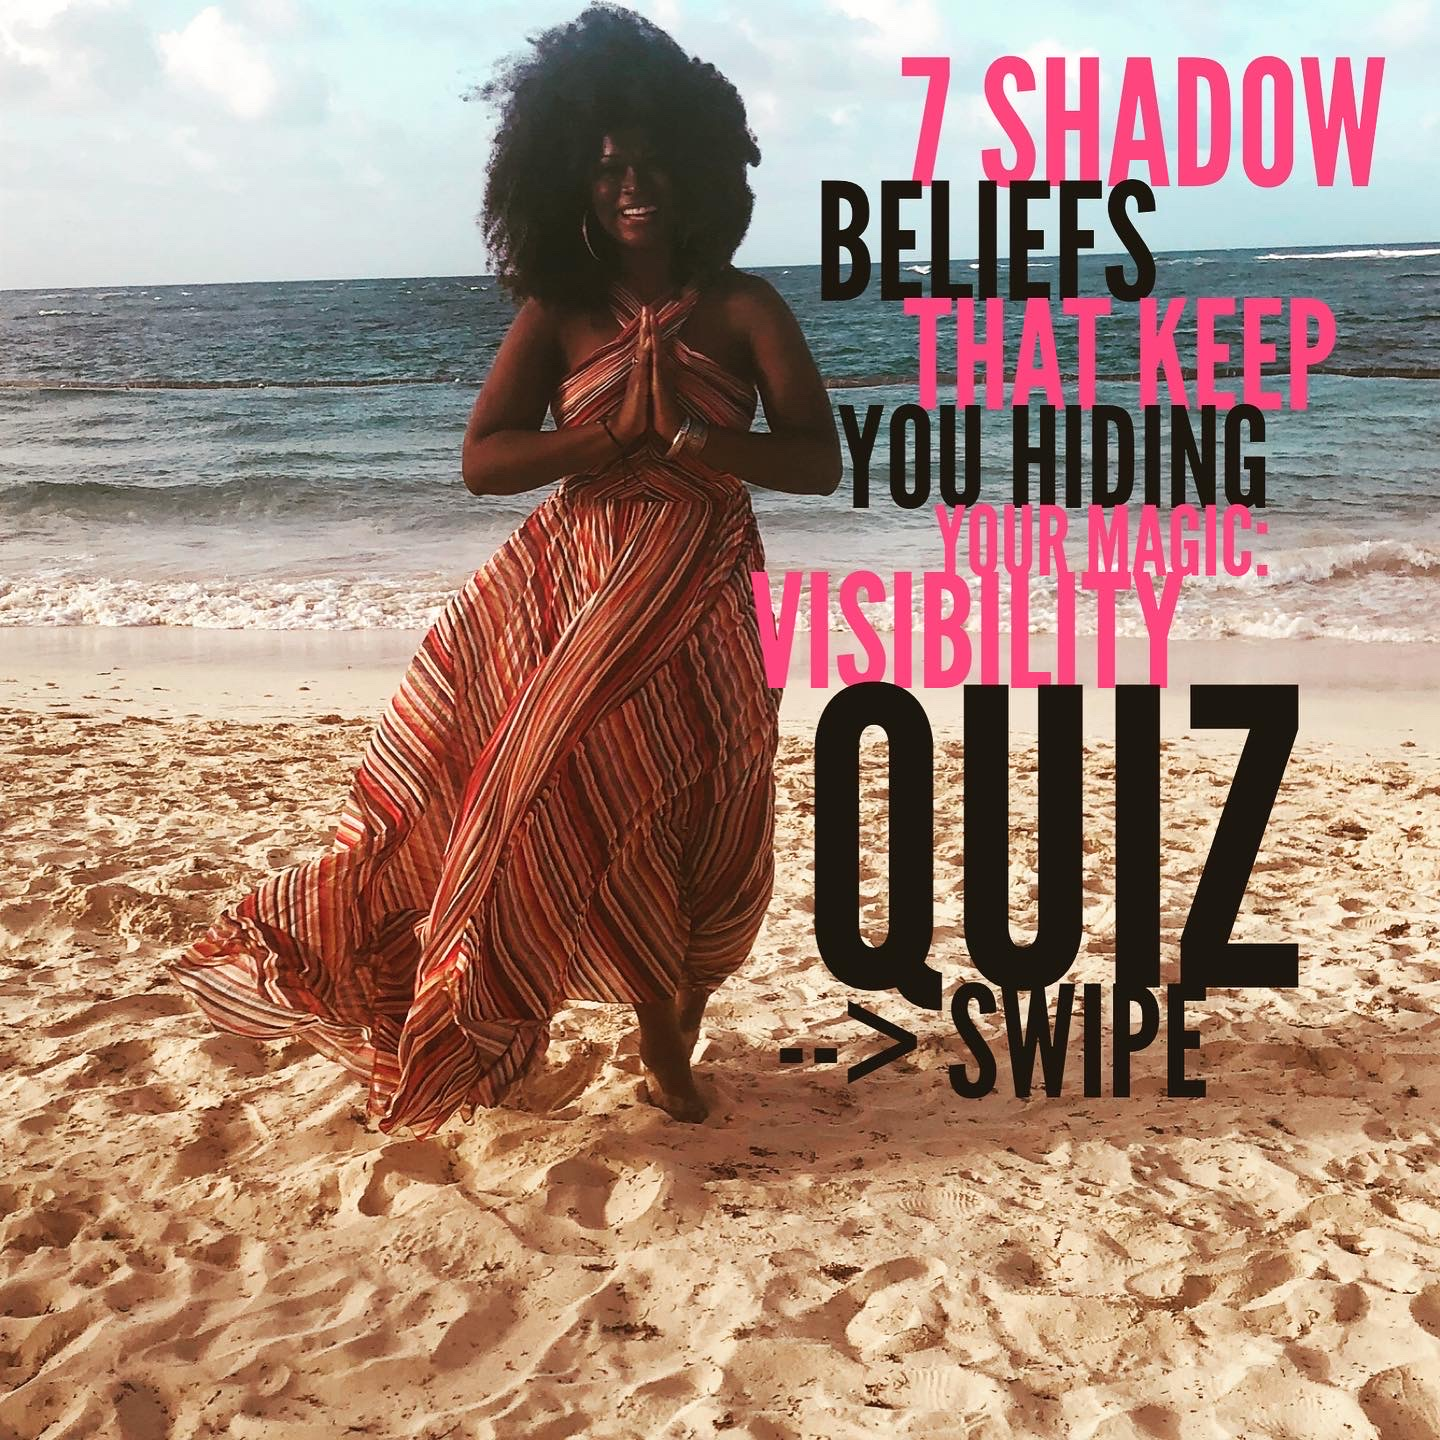 7 Shadow Beliefs that Keep You Hiding: Visibility Quiz